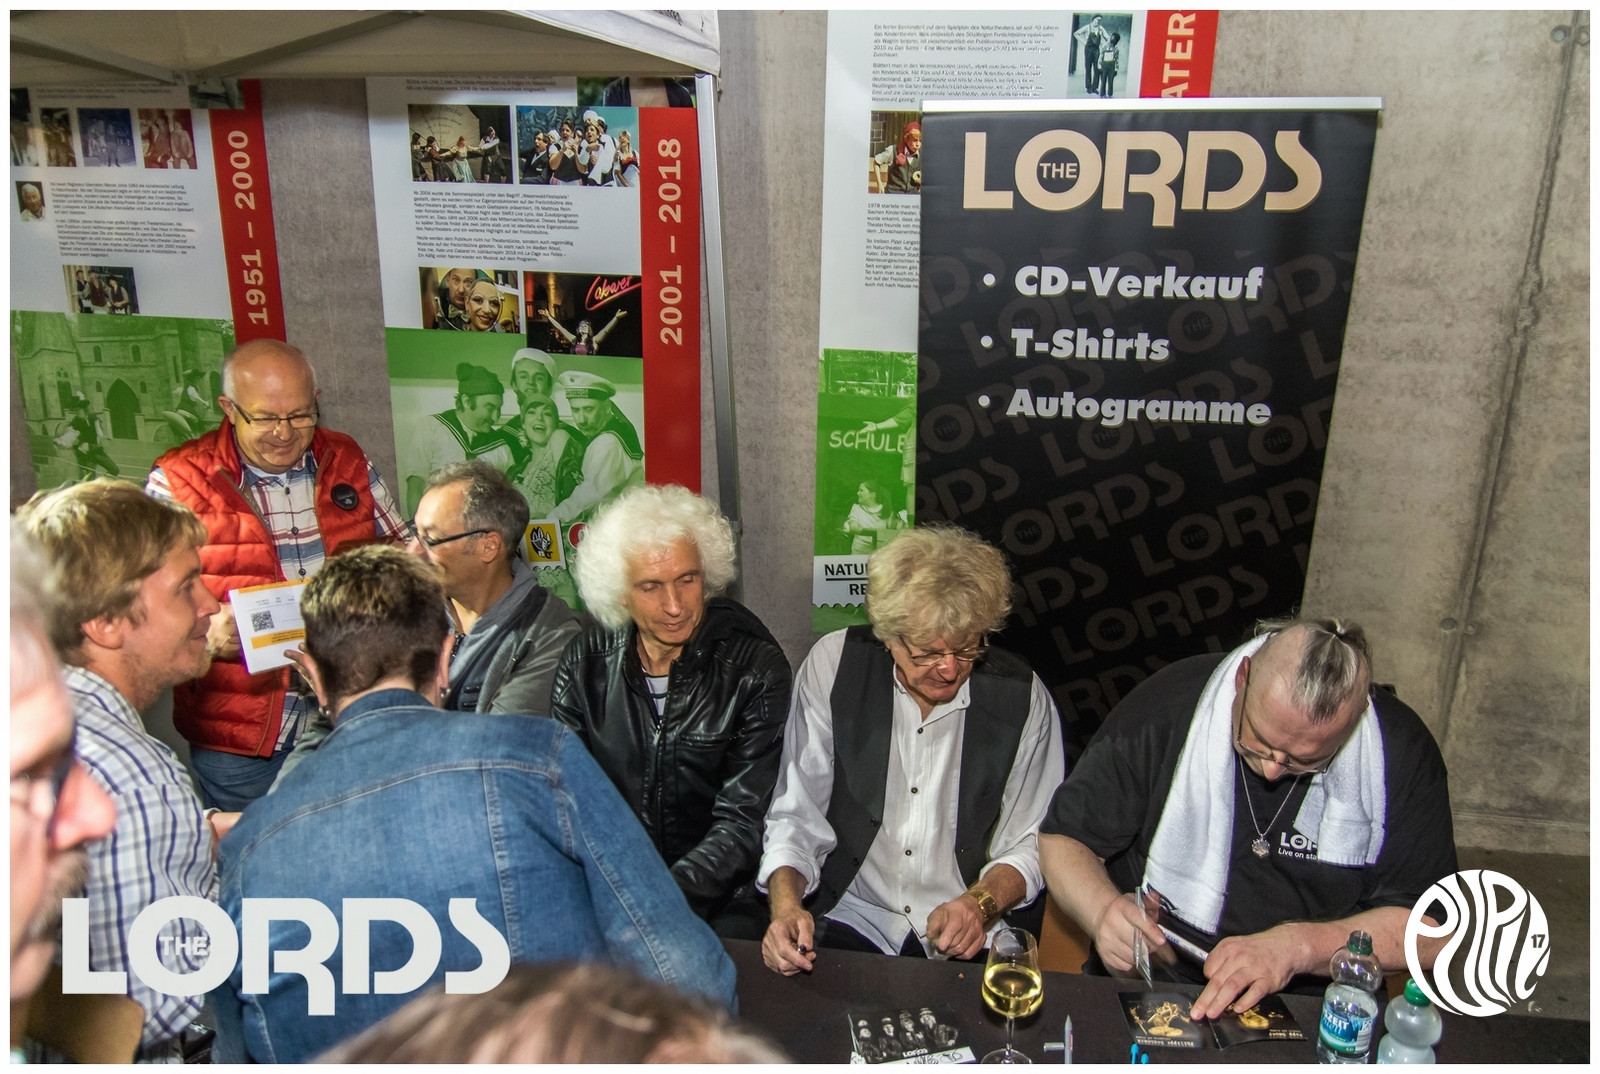 23.08.2019-LORDS Reutlingen-543 (Kopie)